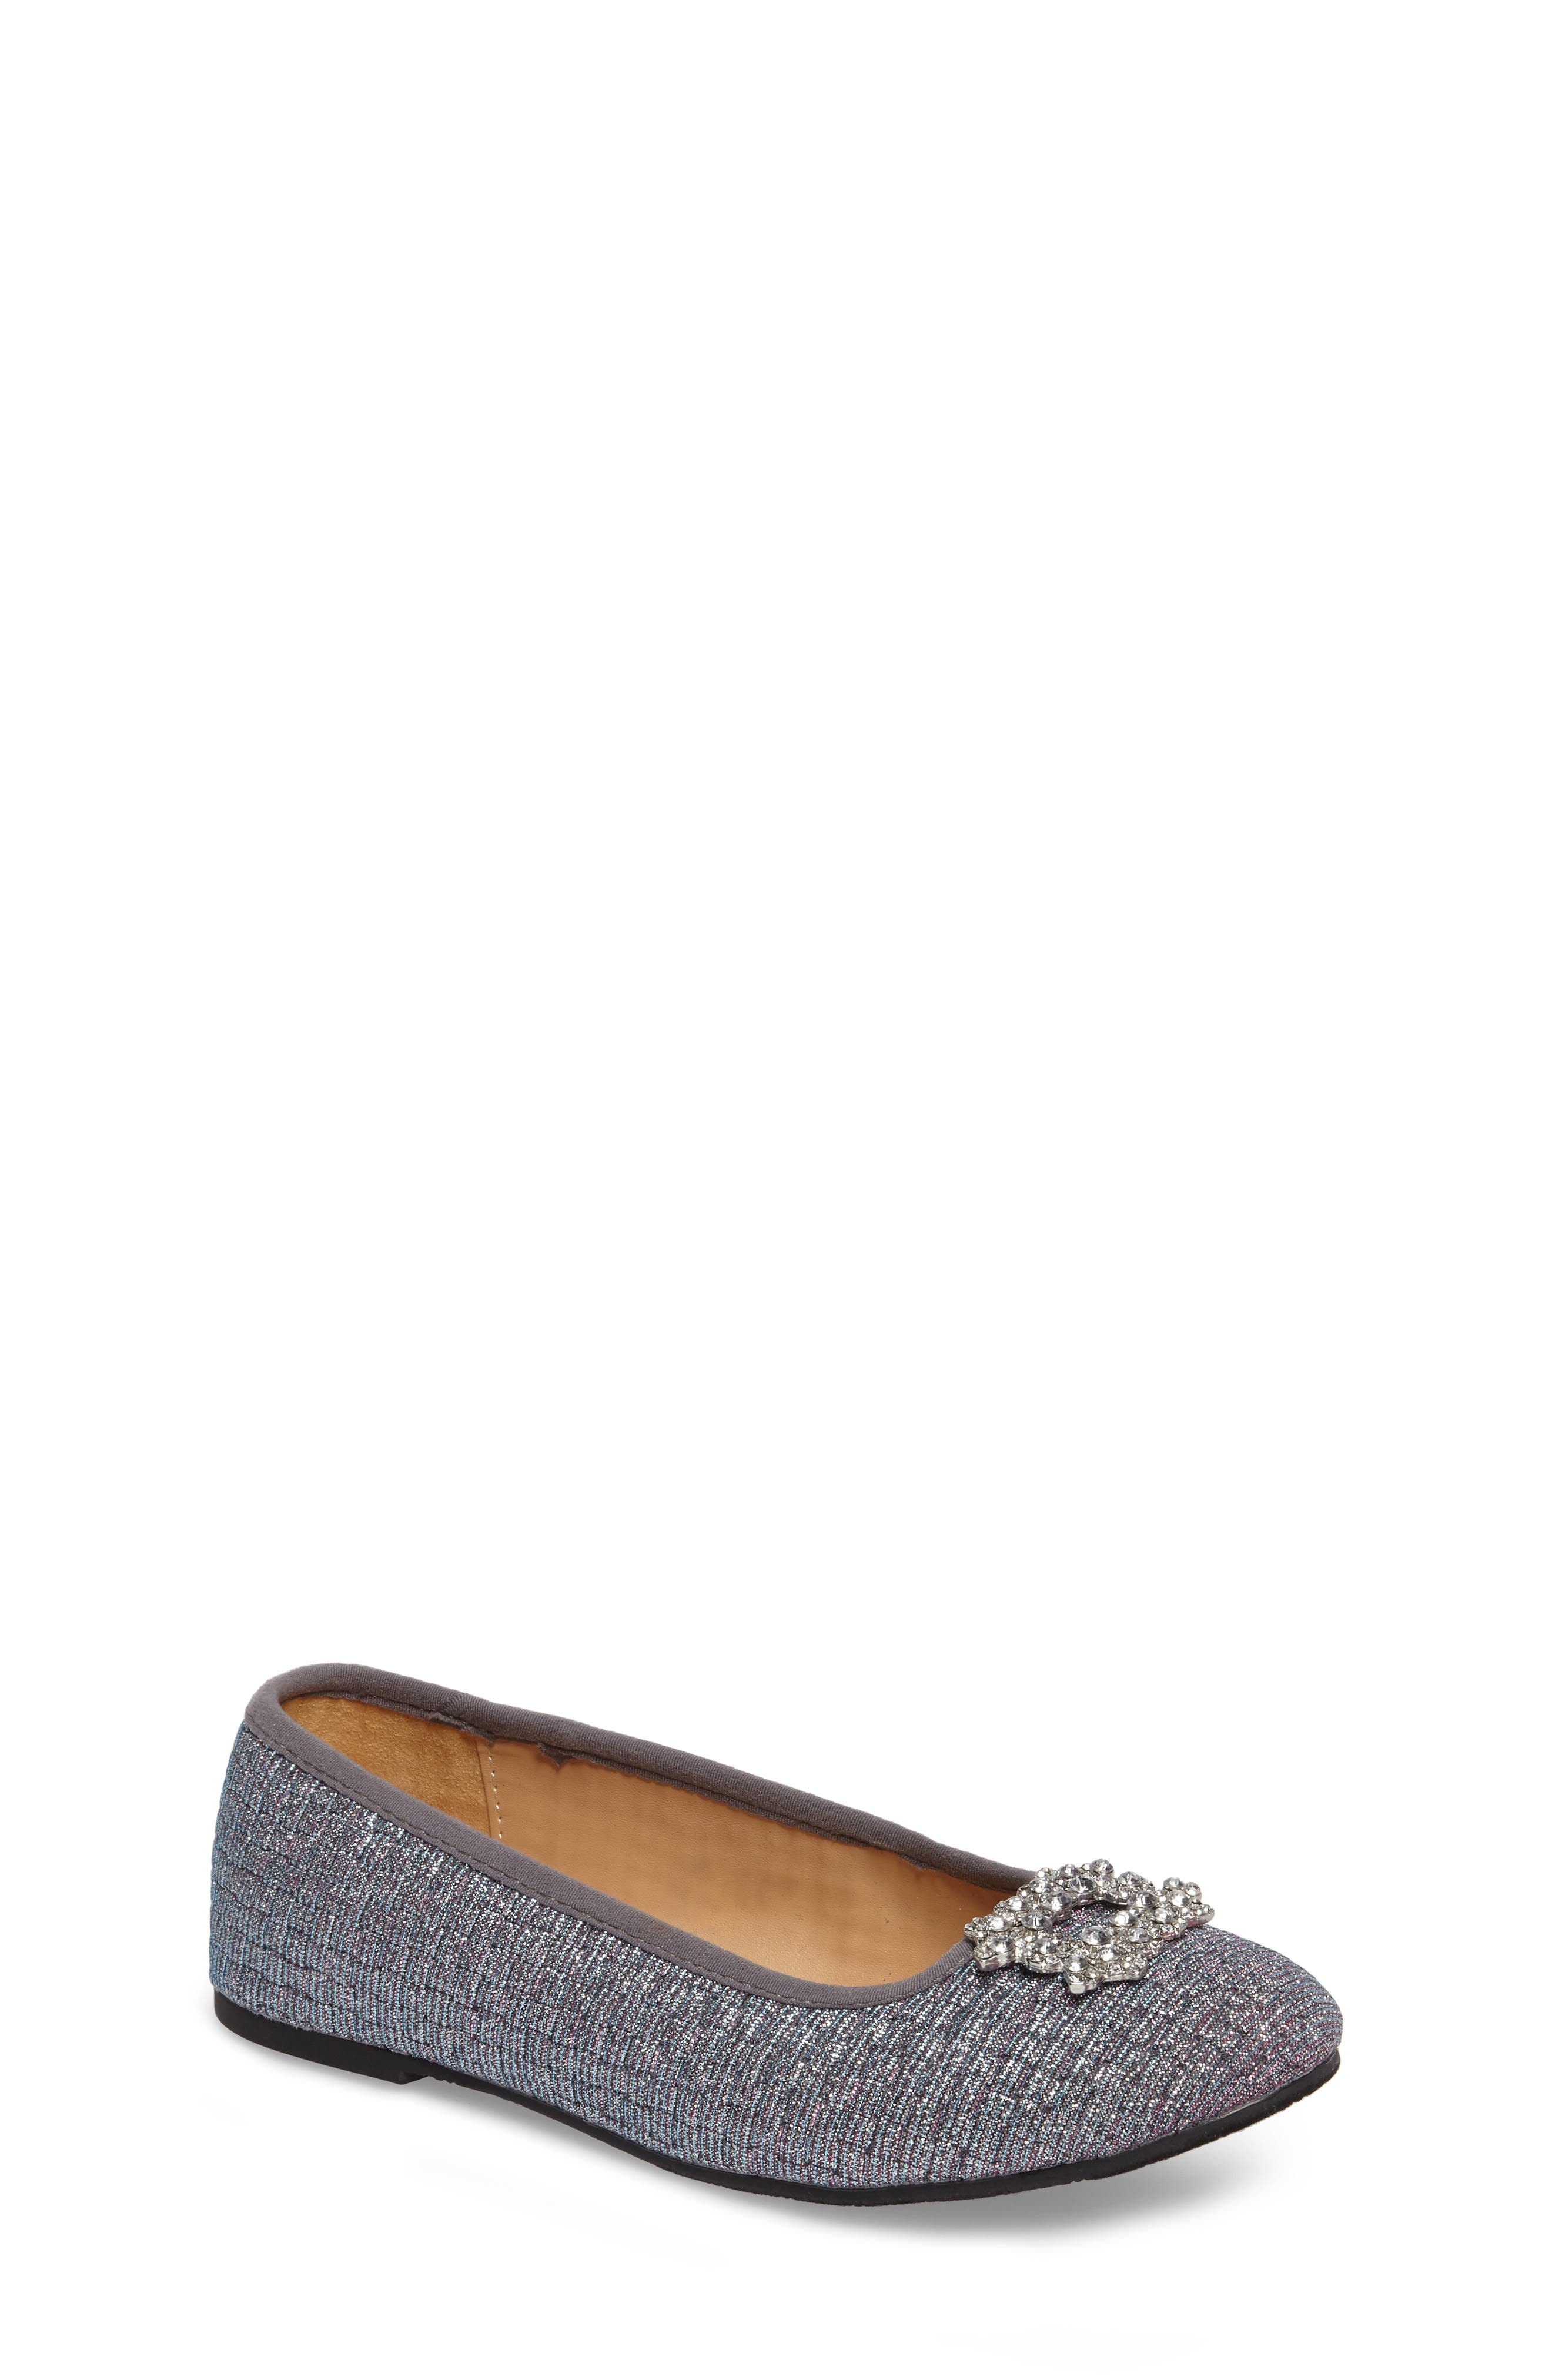 Main Image - Badgley Mischka Amber Nidia Embellished Glitter Flat (Toddler, Little Kid & Big Kid)